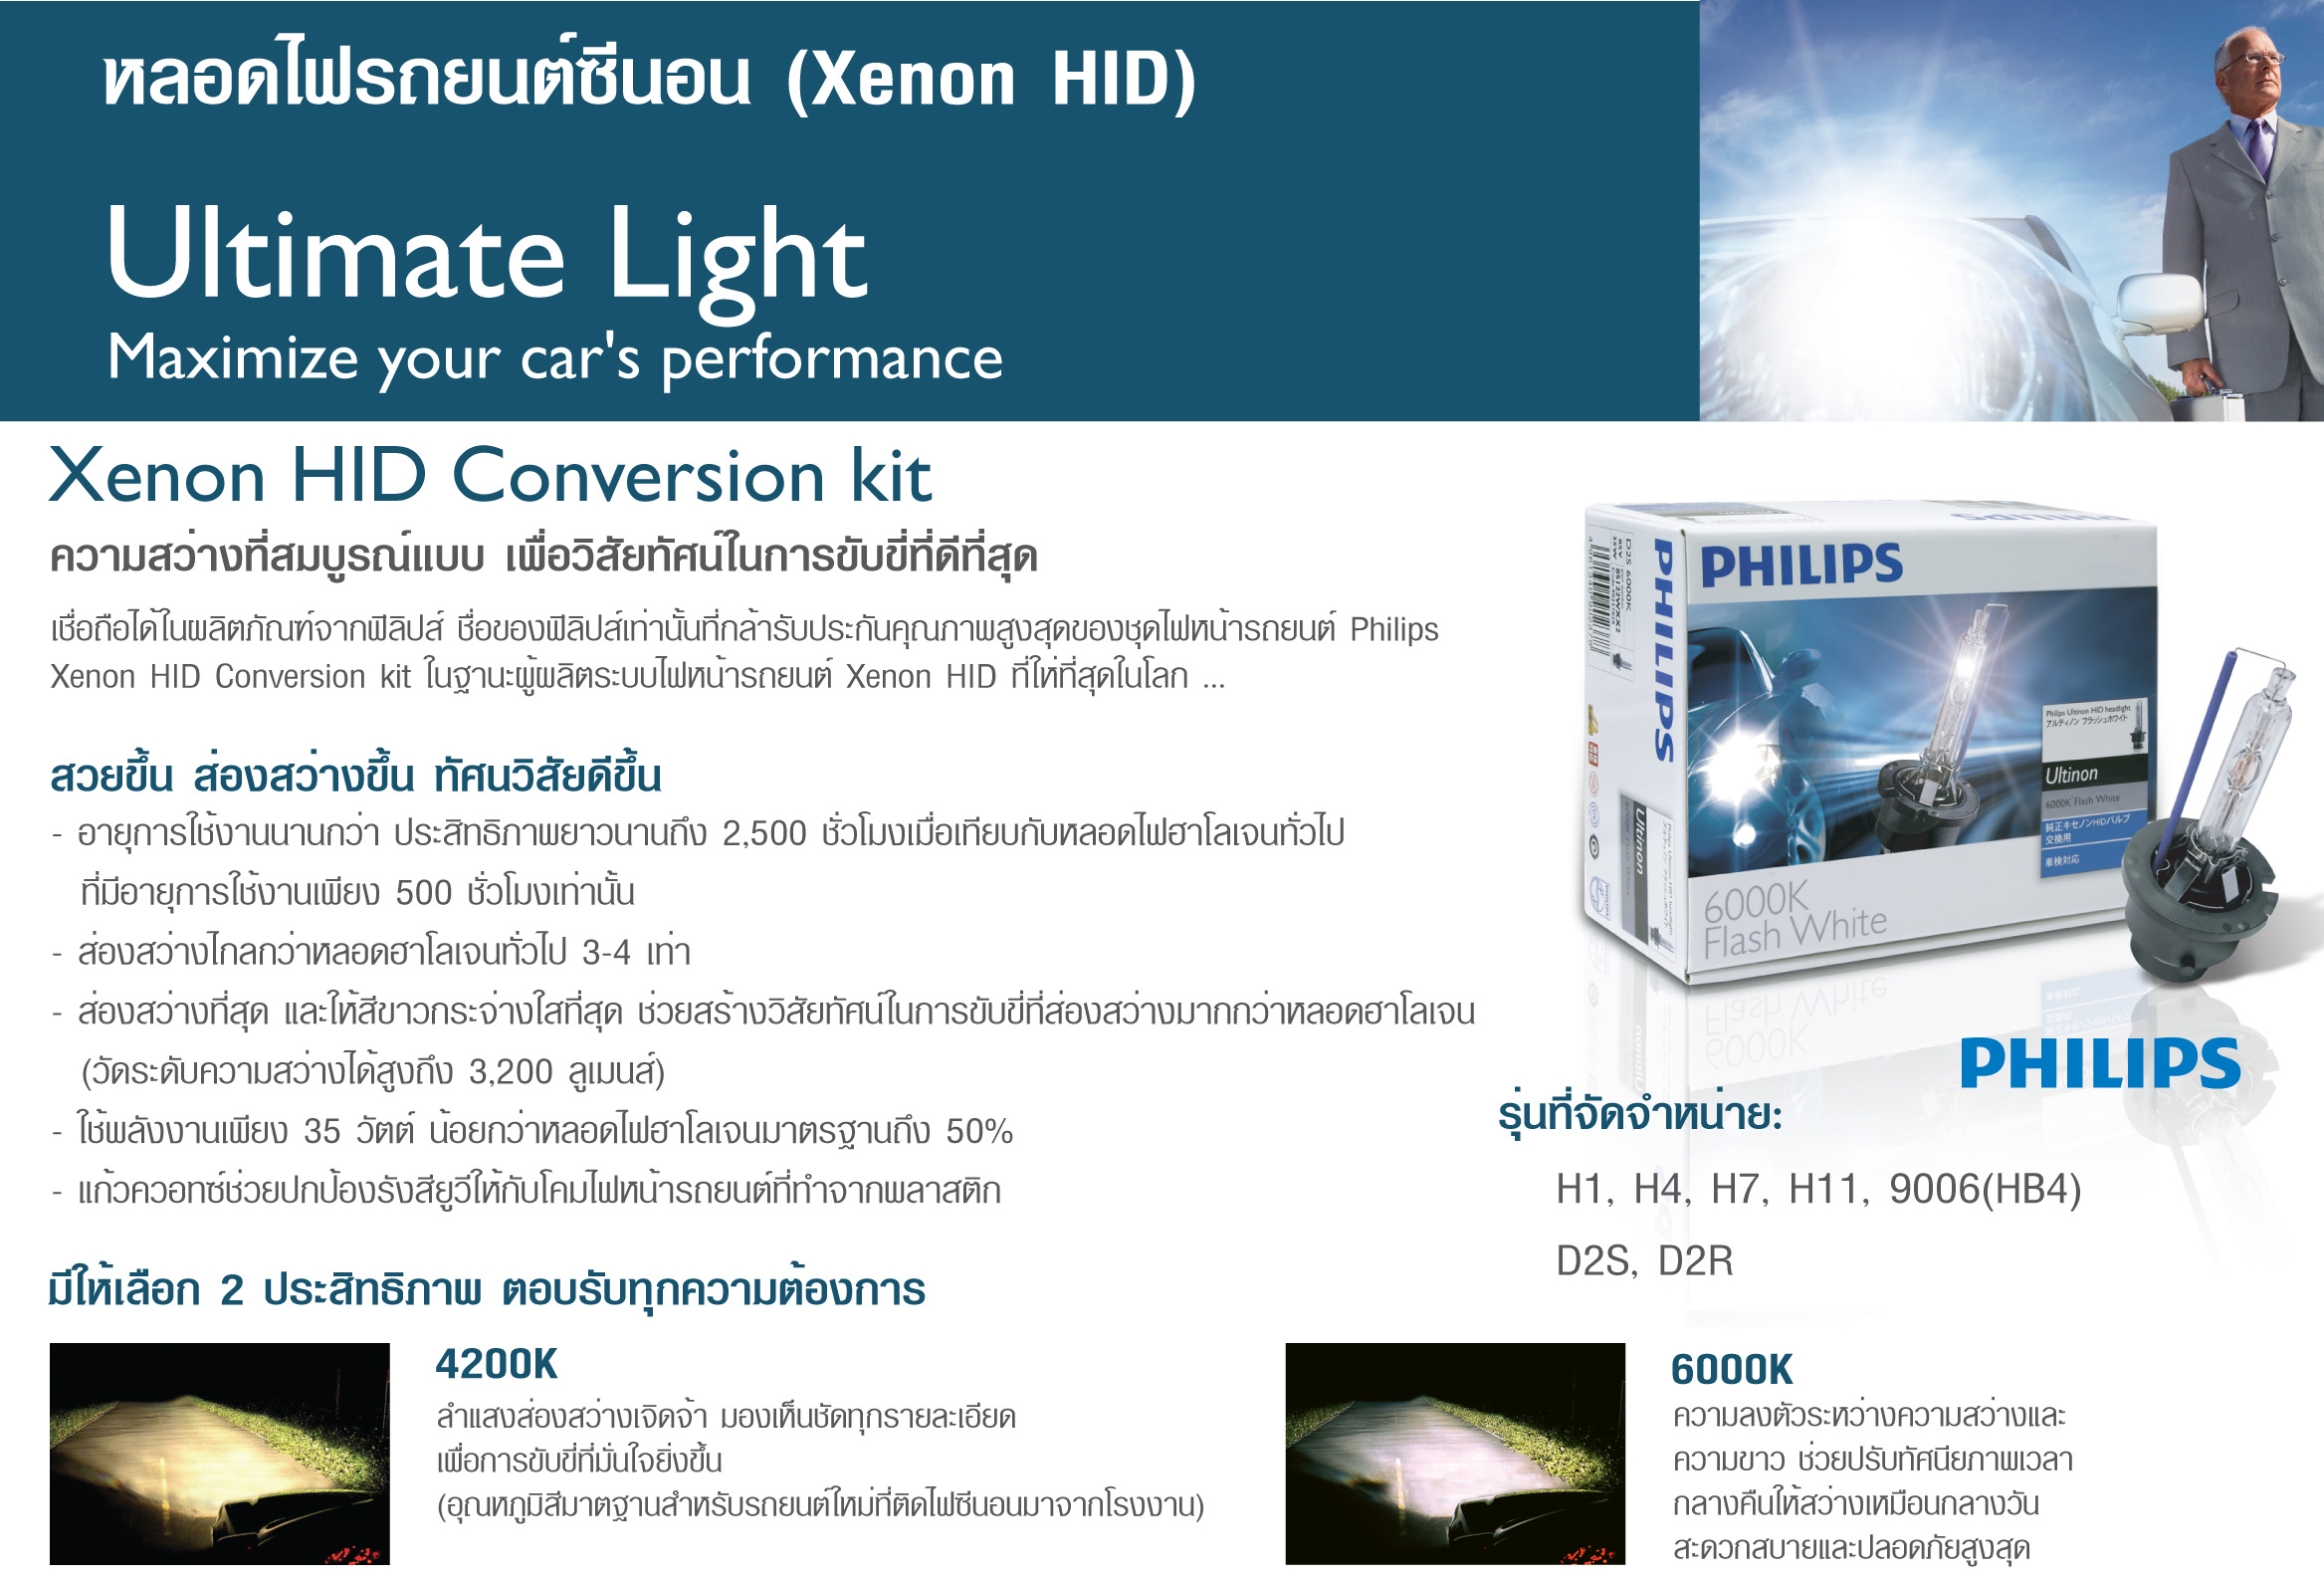 Philips Xenon